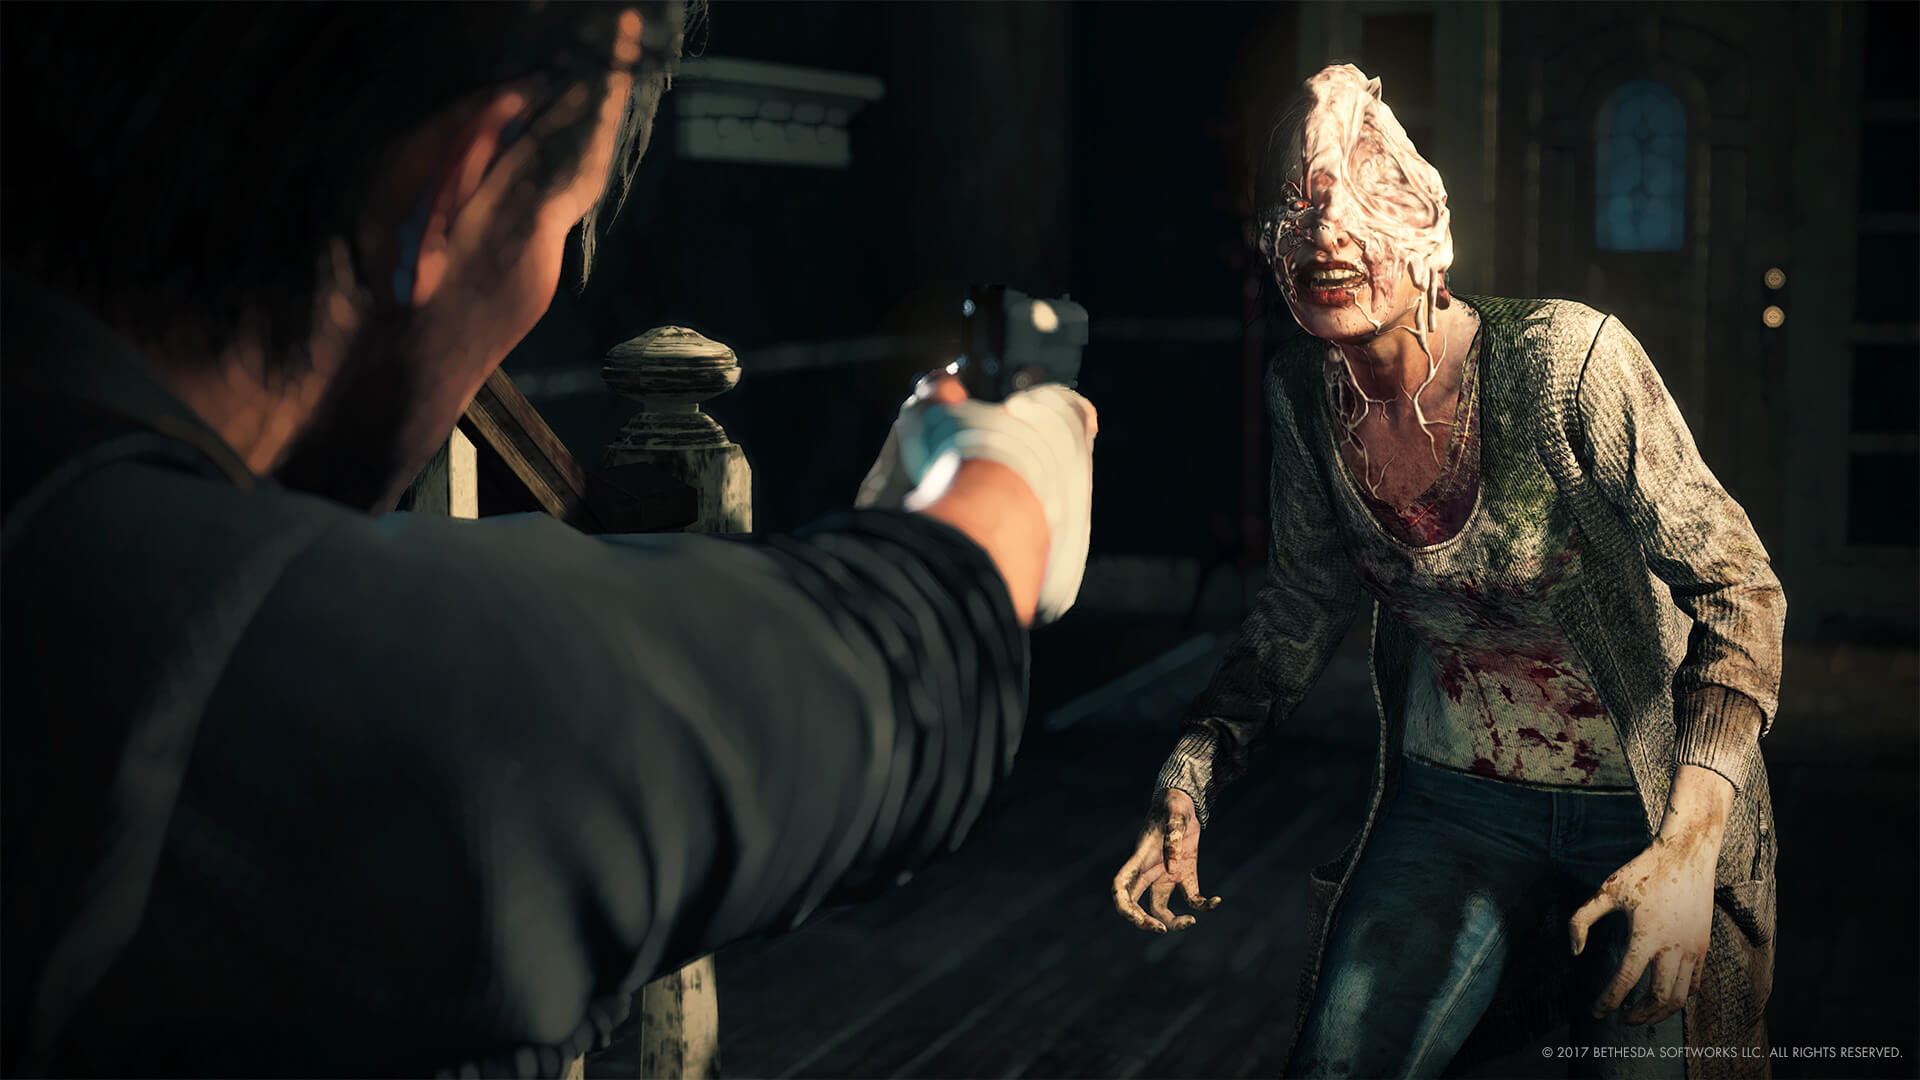 The Evil within 2 combat screenshot 1 - The Evil Within 2 Gameplay Videos Surface; Switch Version a Possibility